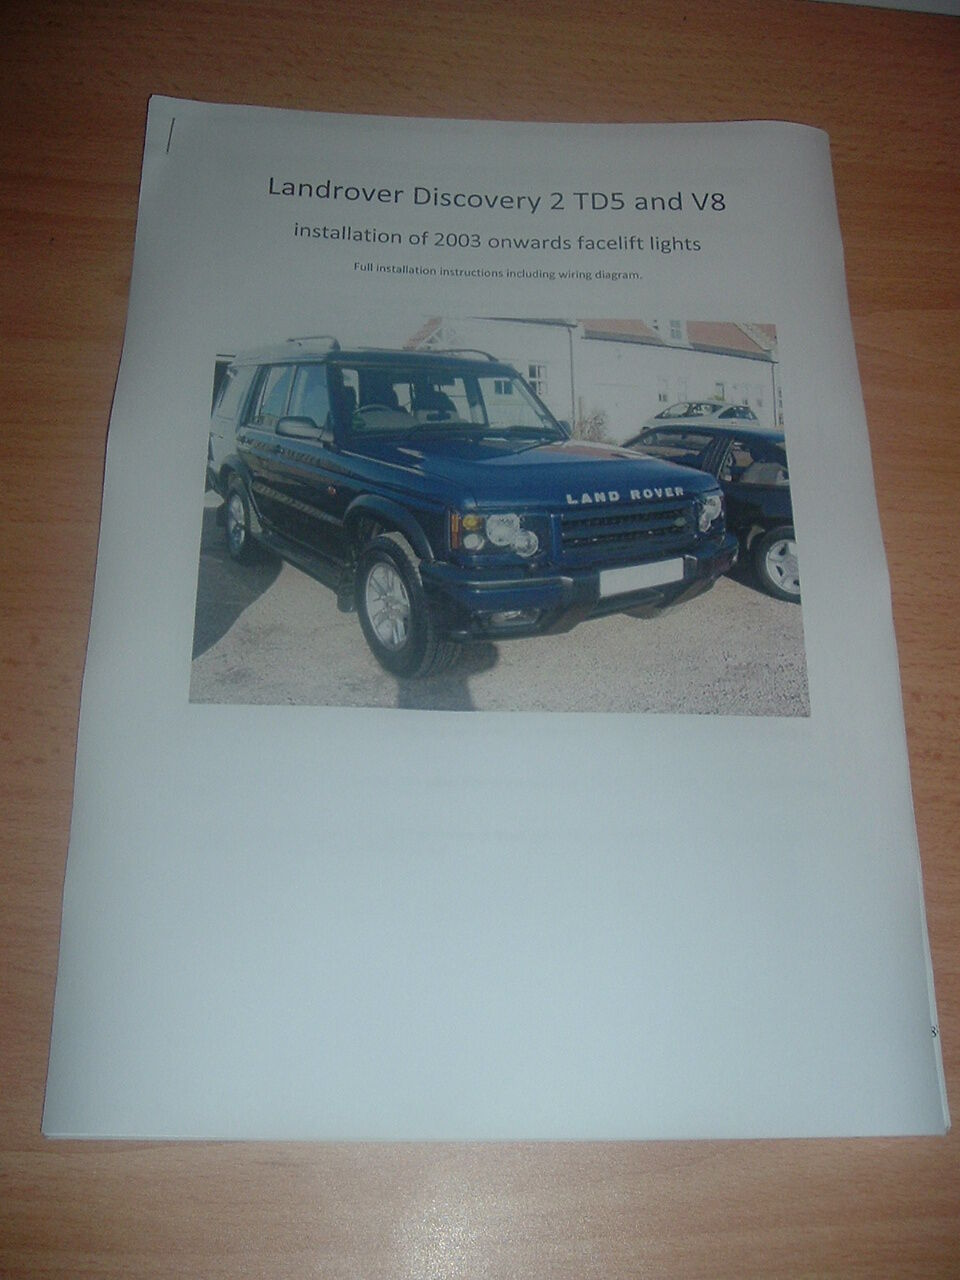 Landrover Discovery Td5 V8 Headlight Headlamp Facelift Wiring Land Rover Diagram Manual 1 Of See More